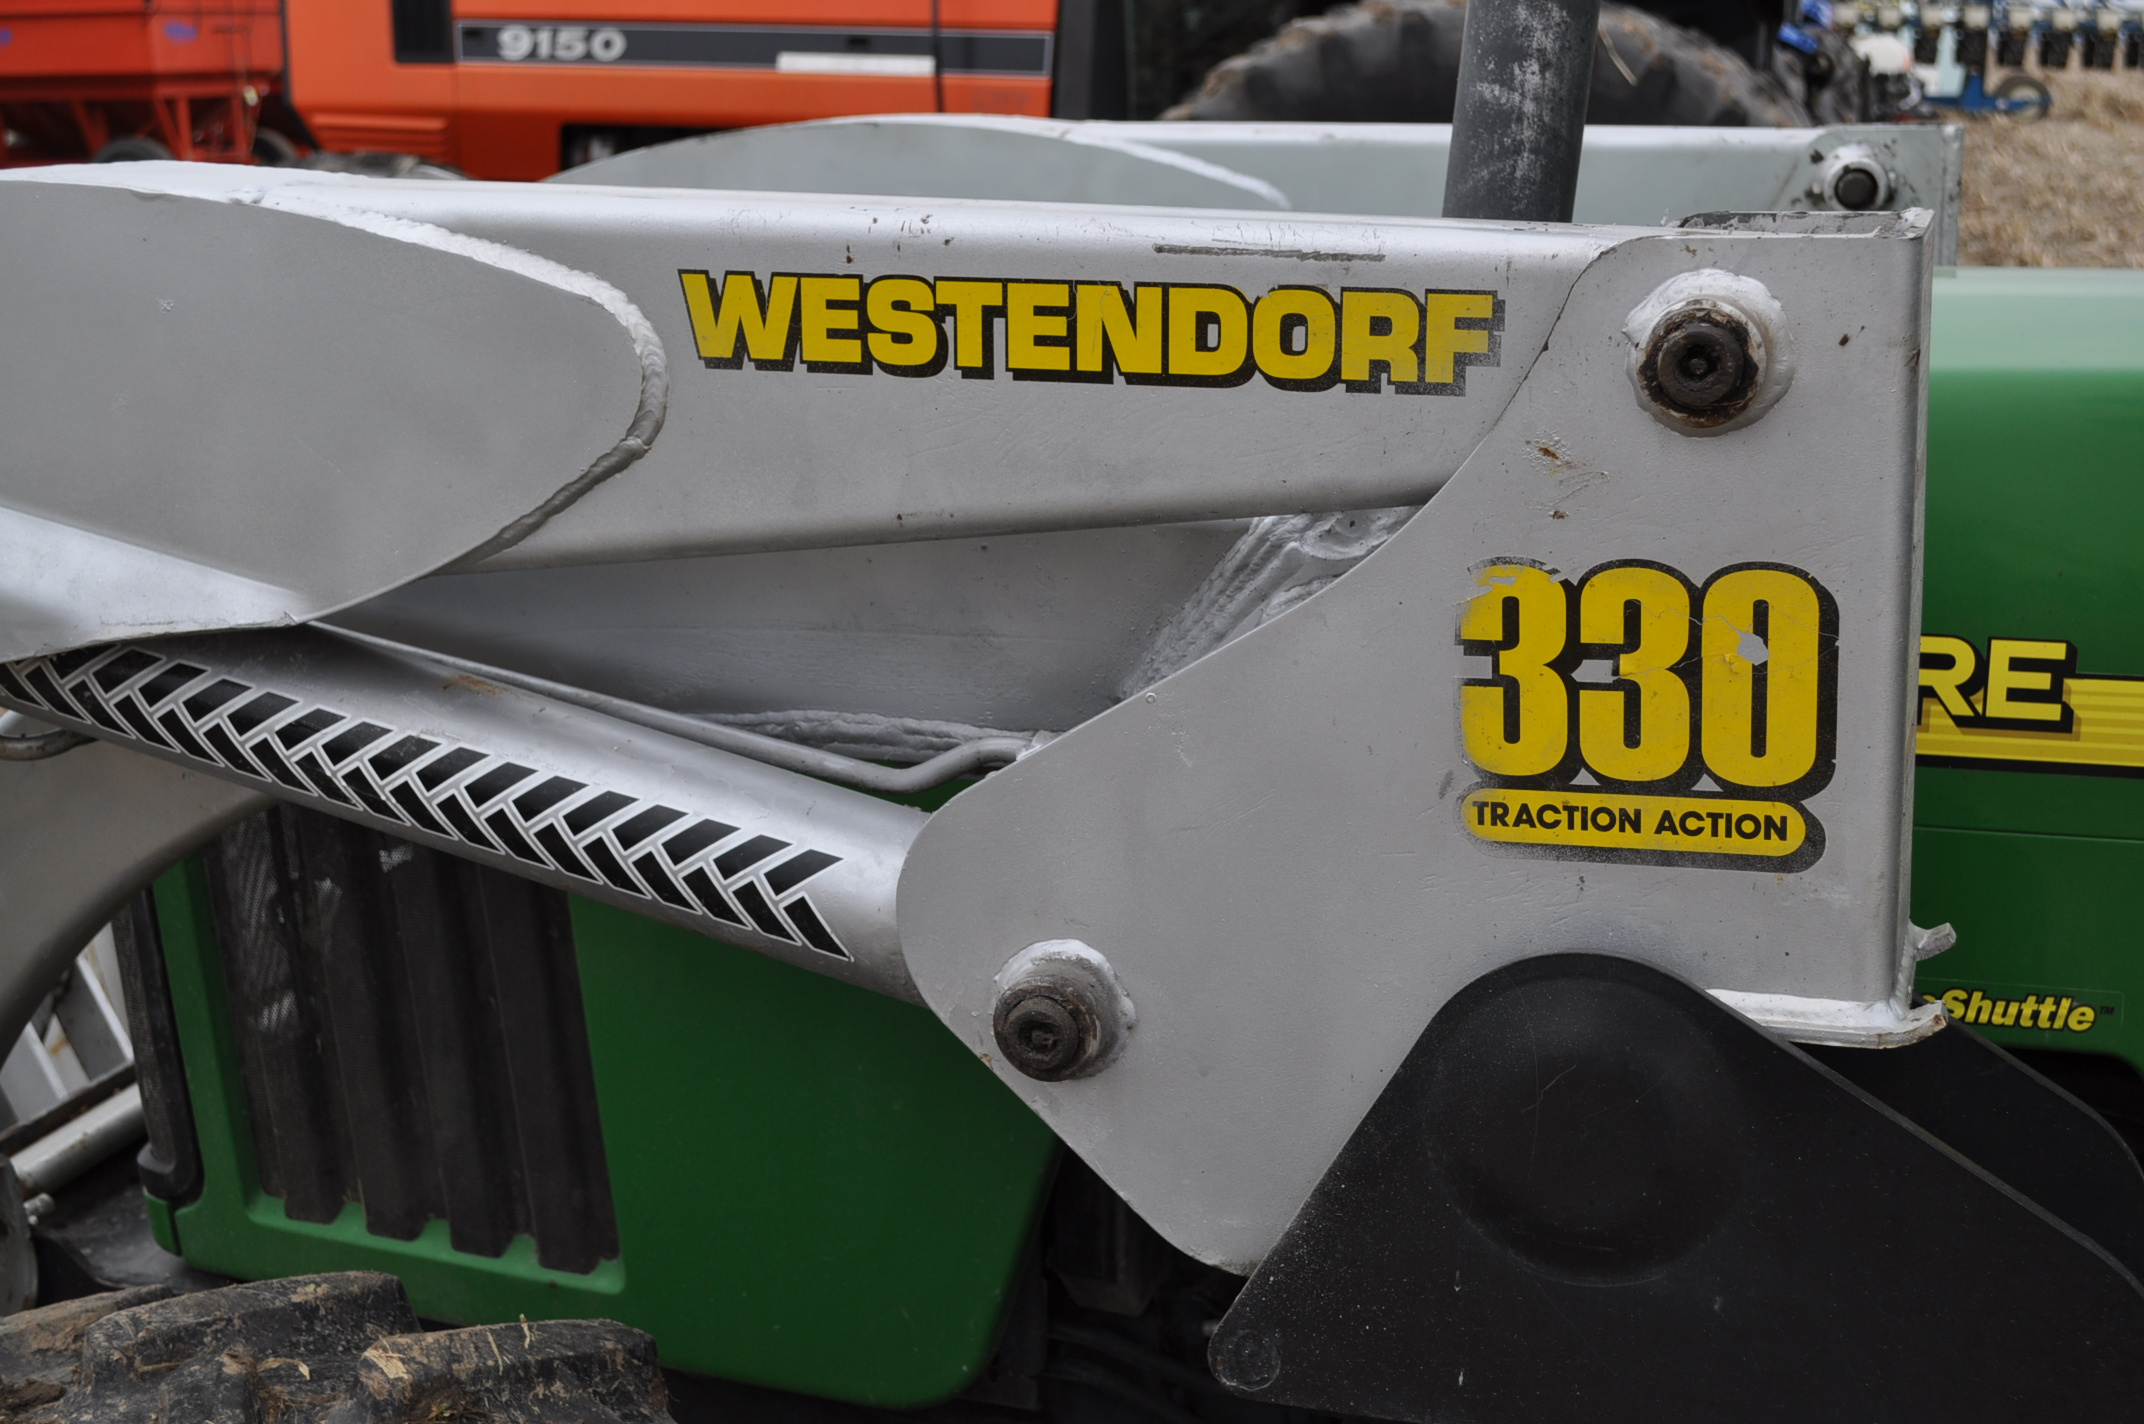 John Deere 5520 utility tractor, MFWD, 18.4 R 30 rear, 12.4-24 front, rear wheel wts, 2 hyd remotes, - Image 19 of 26